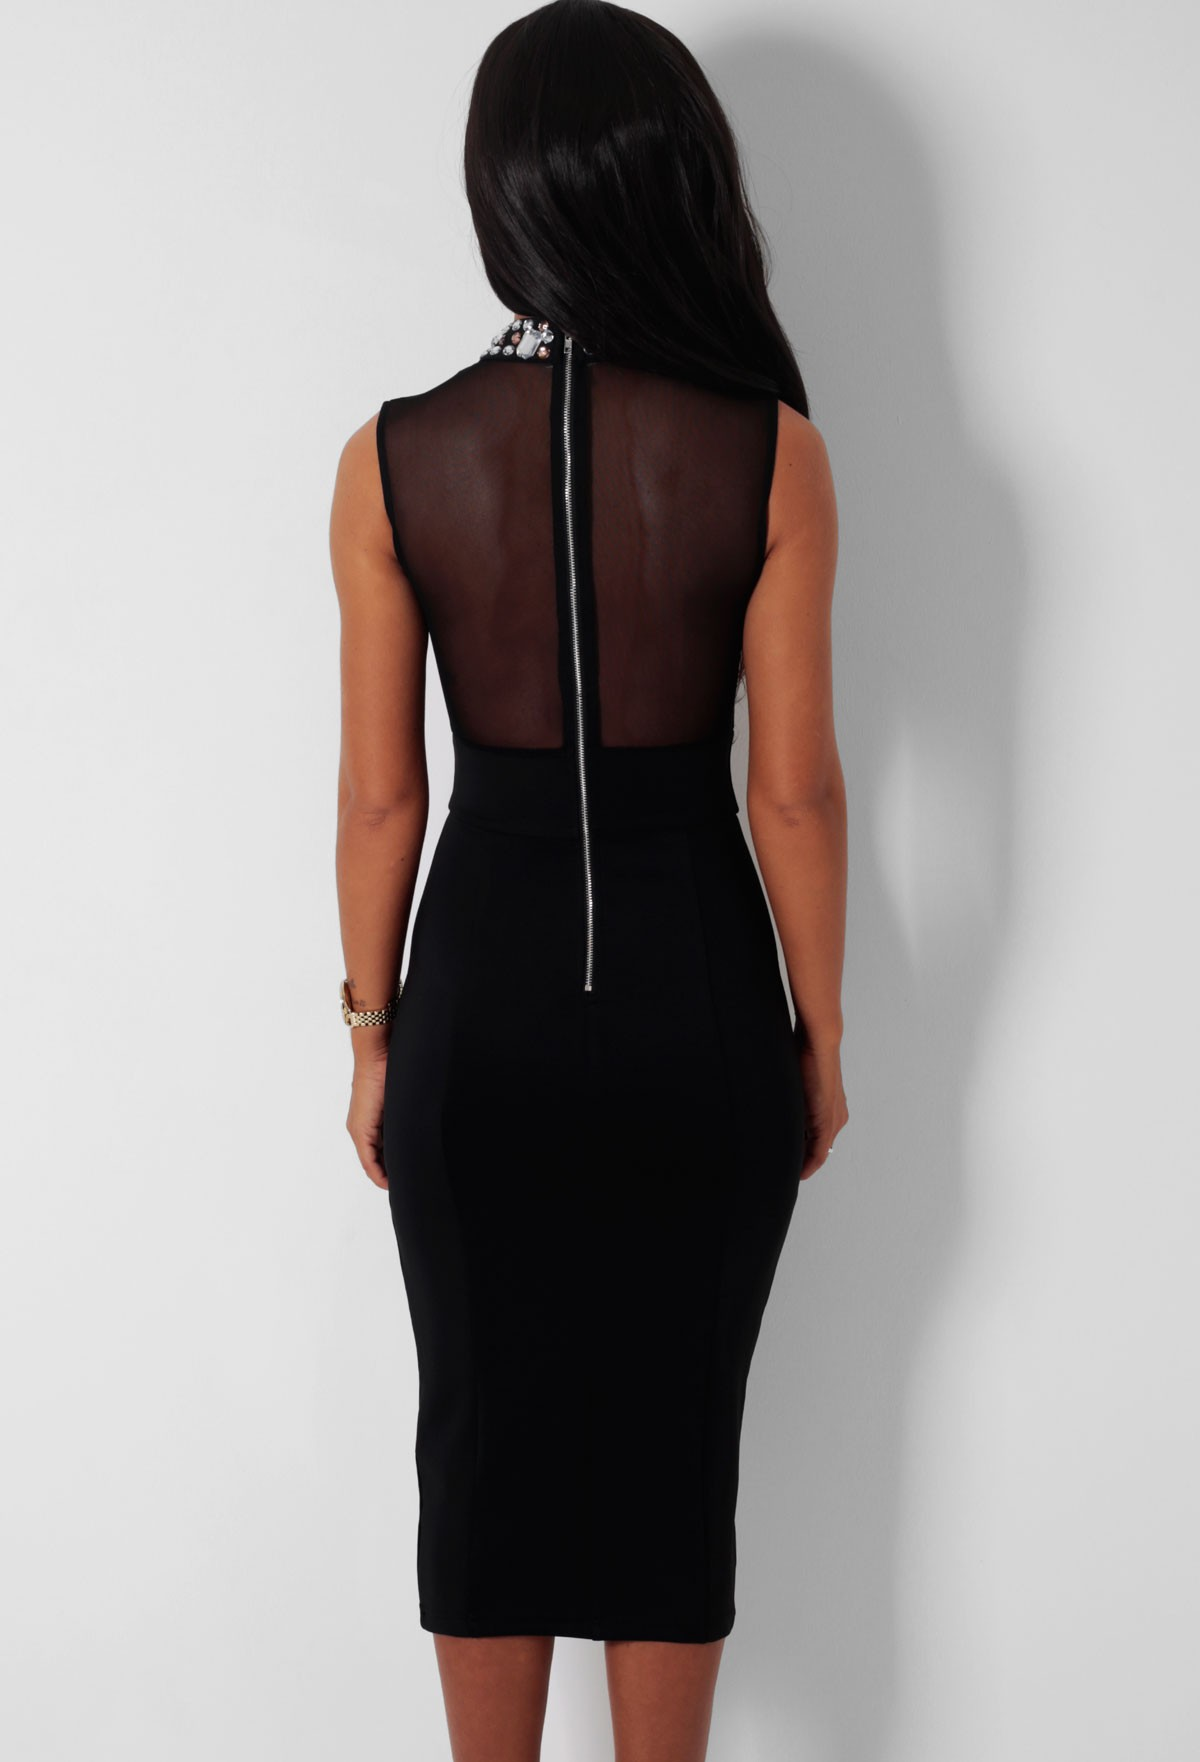 Attraction Black Embellished Mesh Bodycon Midi Dress   Pink Boutique